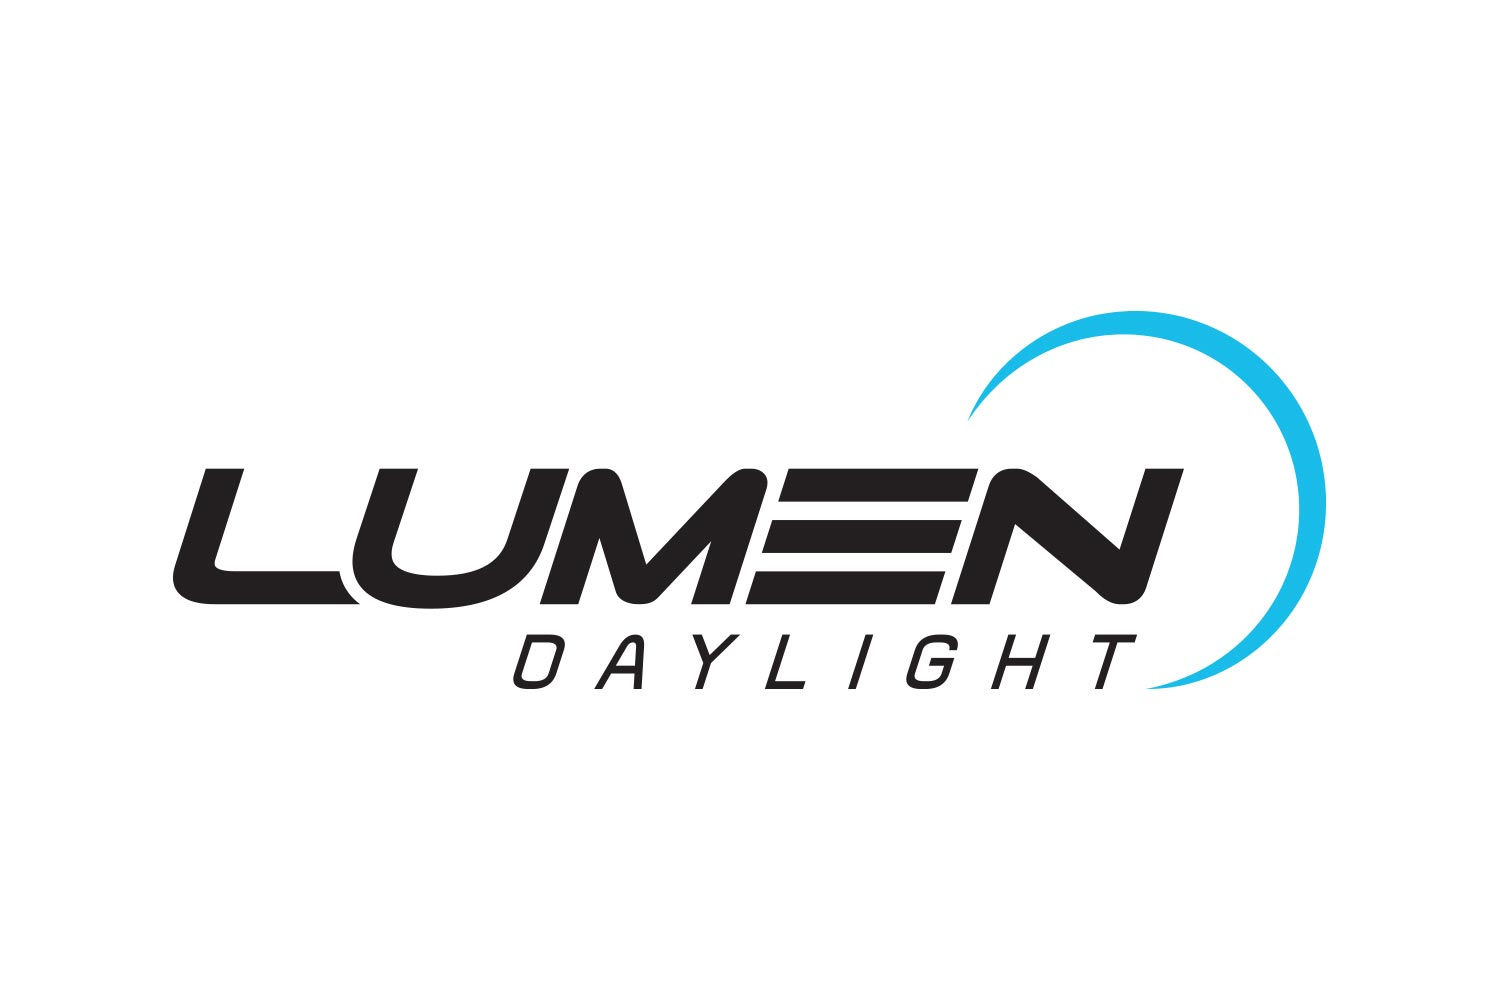 Lumen Workforce R23 LED backljus och arbetsljus